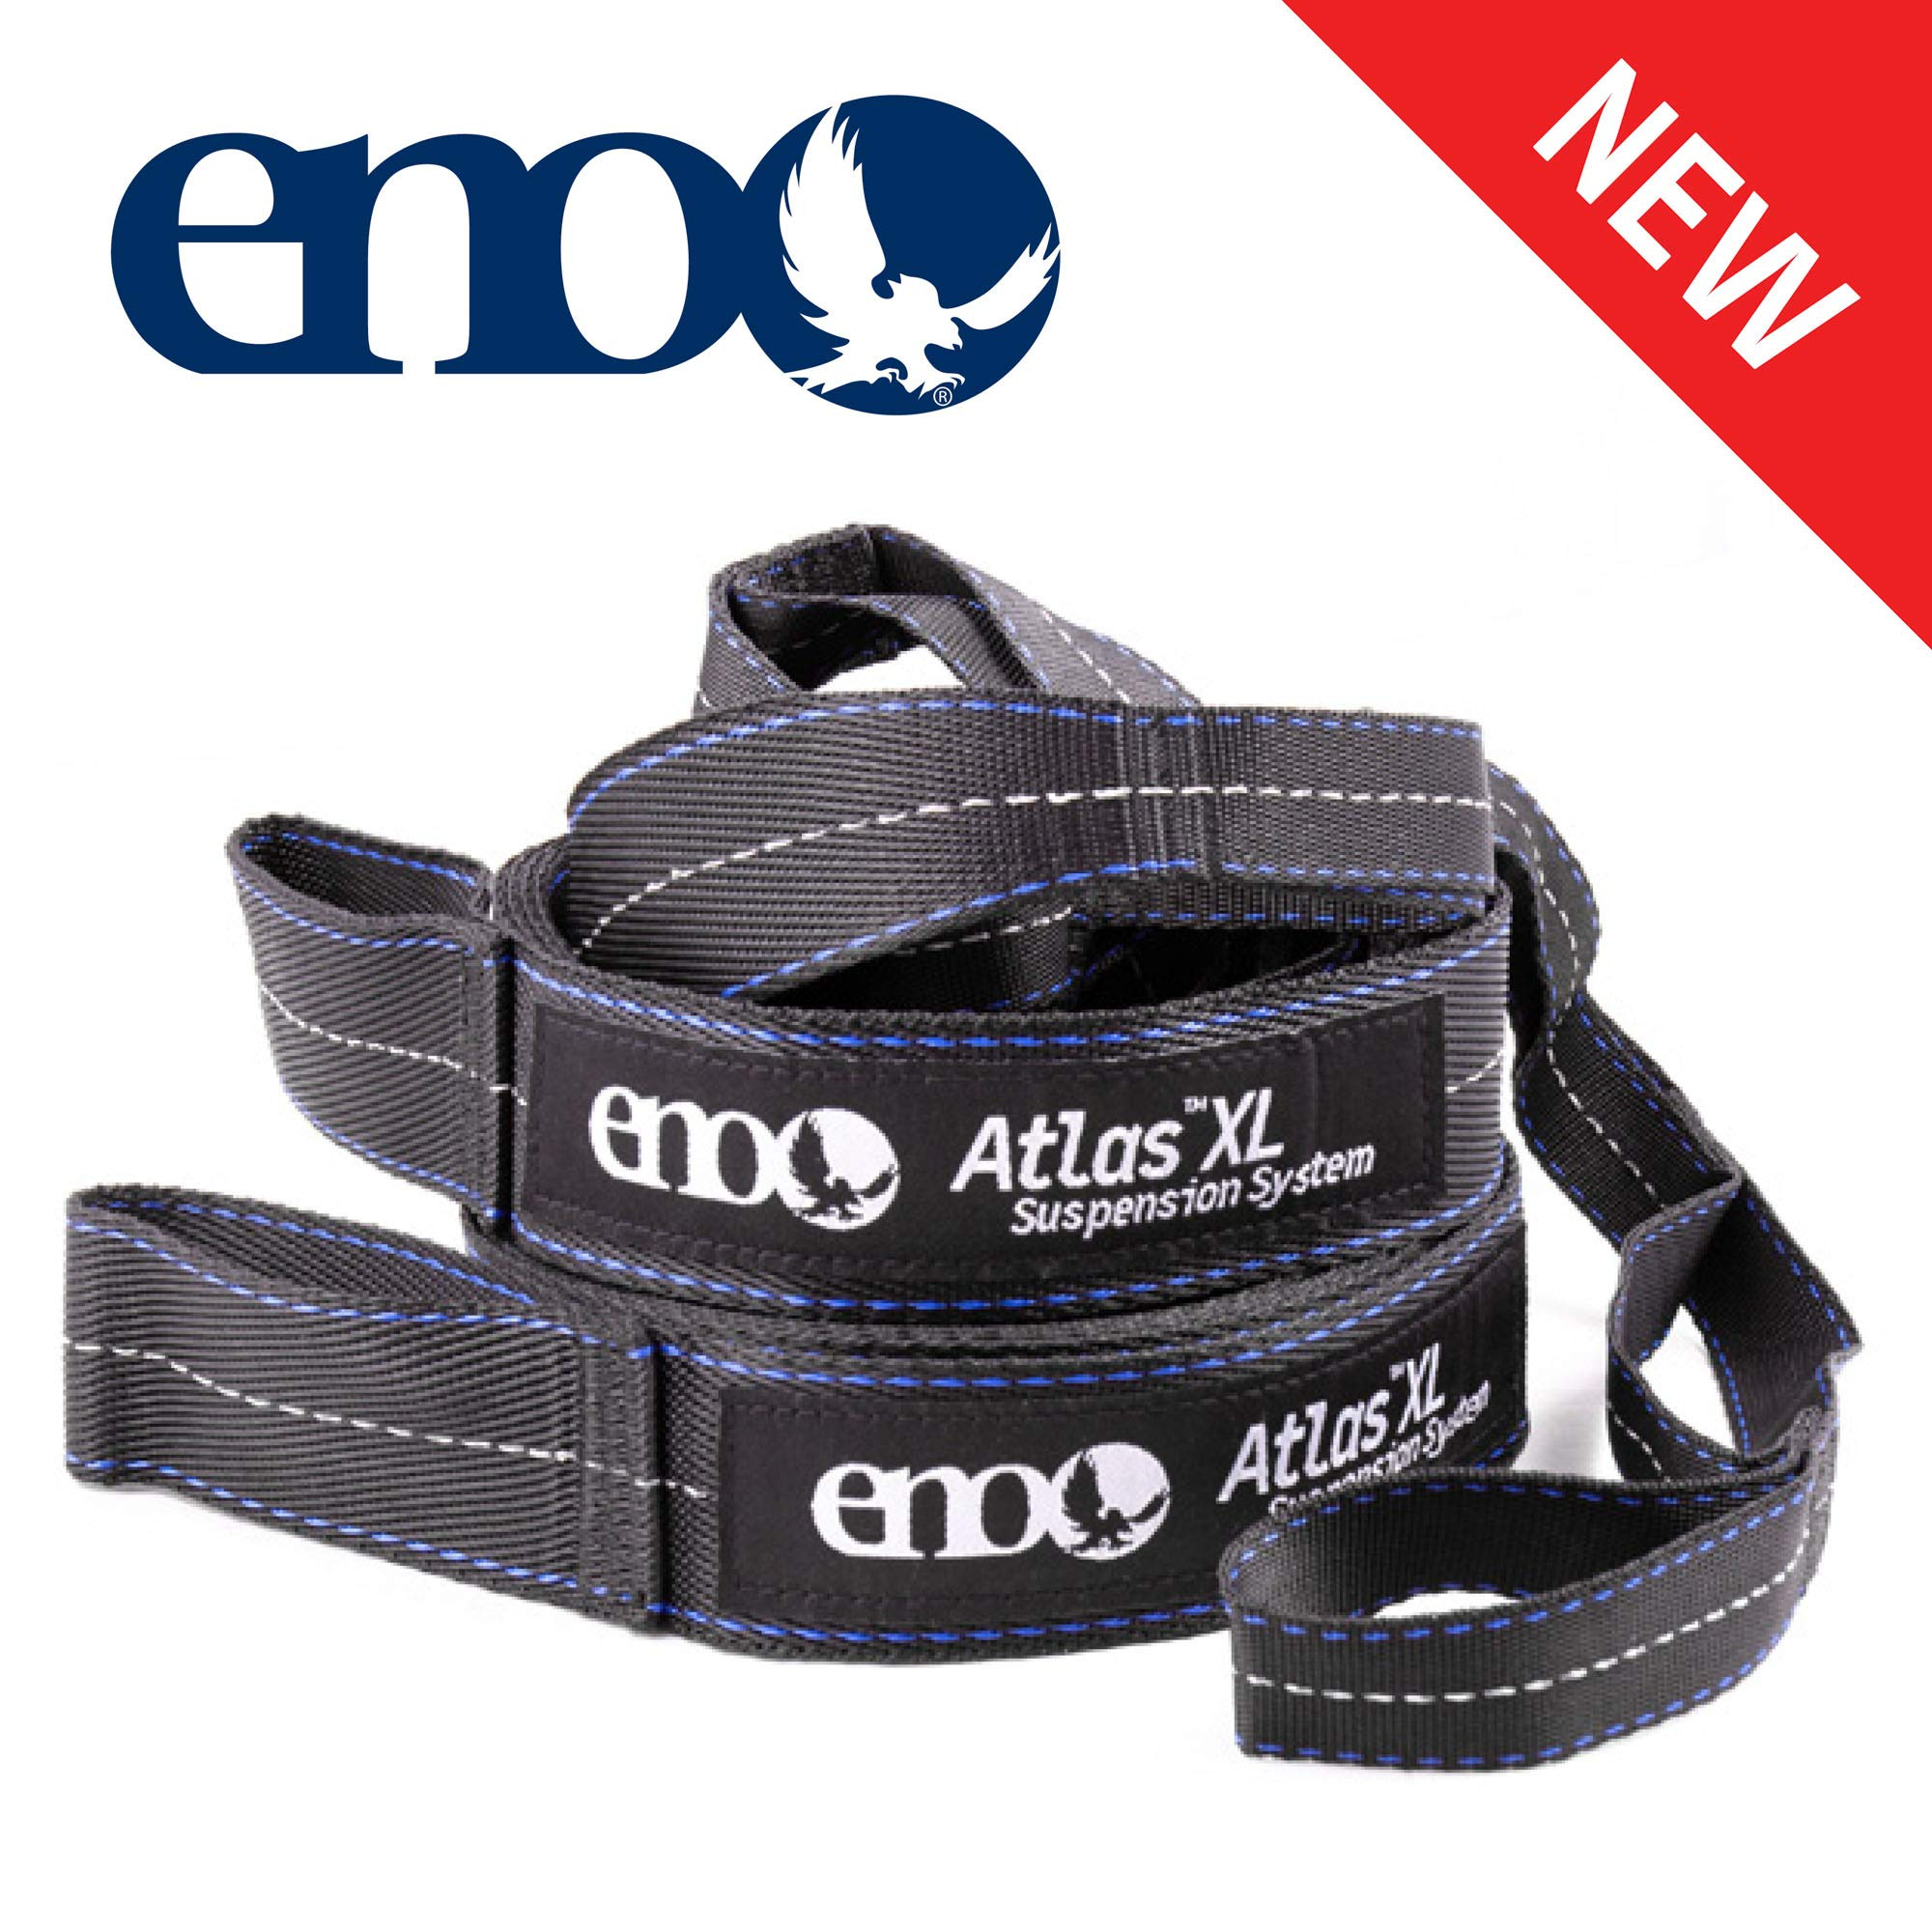 ENO - Eagles Nest Outfitters Atlas XL Hammock Straps, Suspension System, 400 LB Capacity, 13'6'' x 1.5/.75'' by ENO